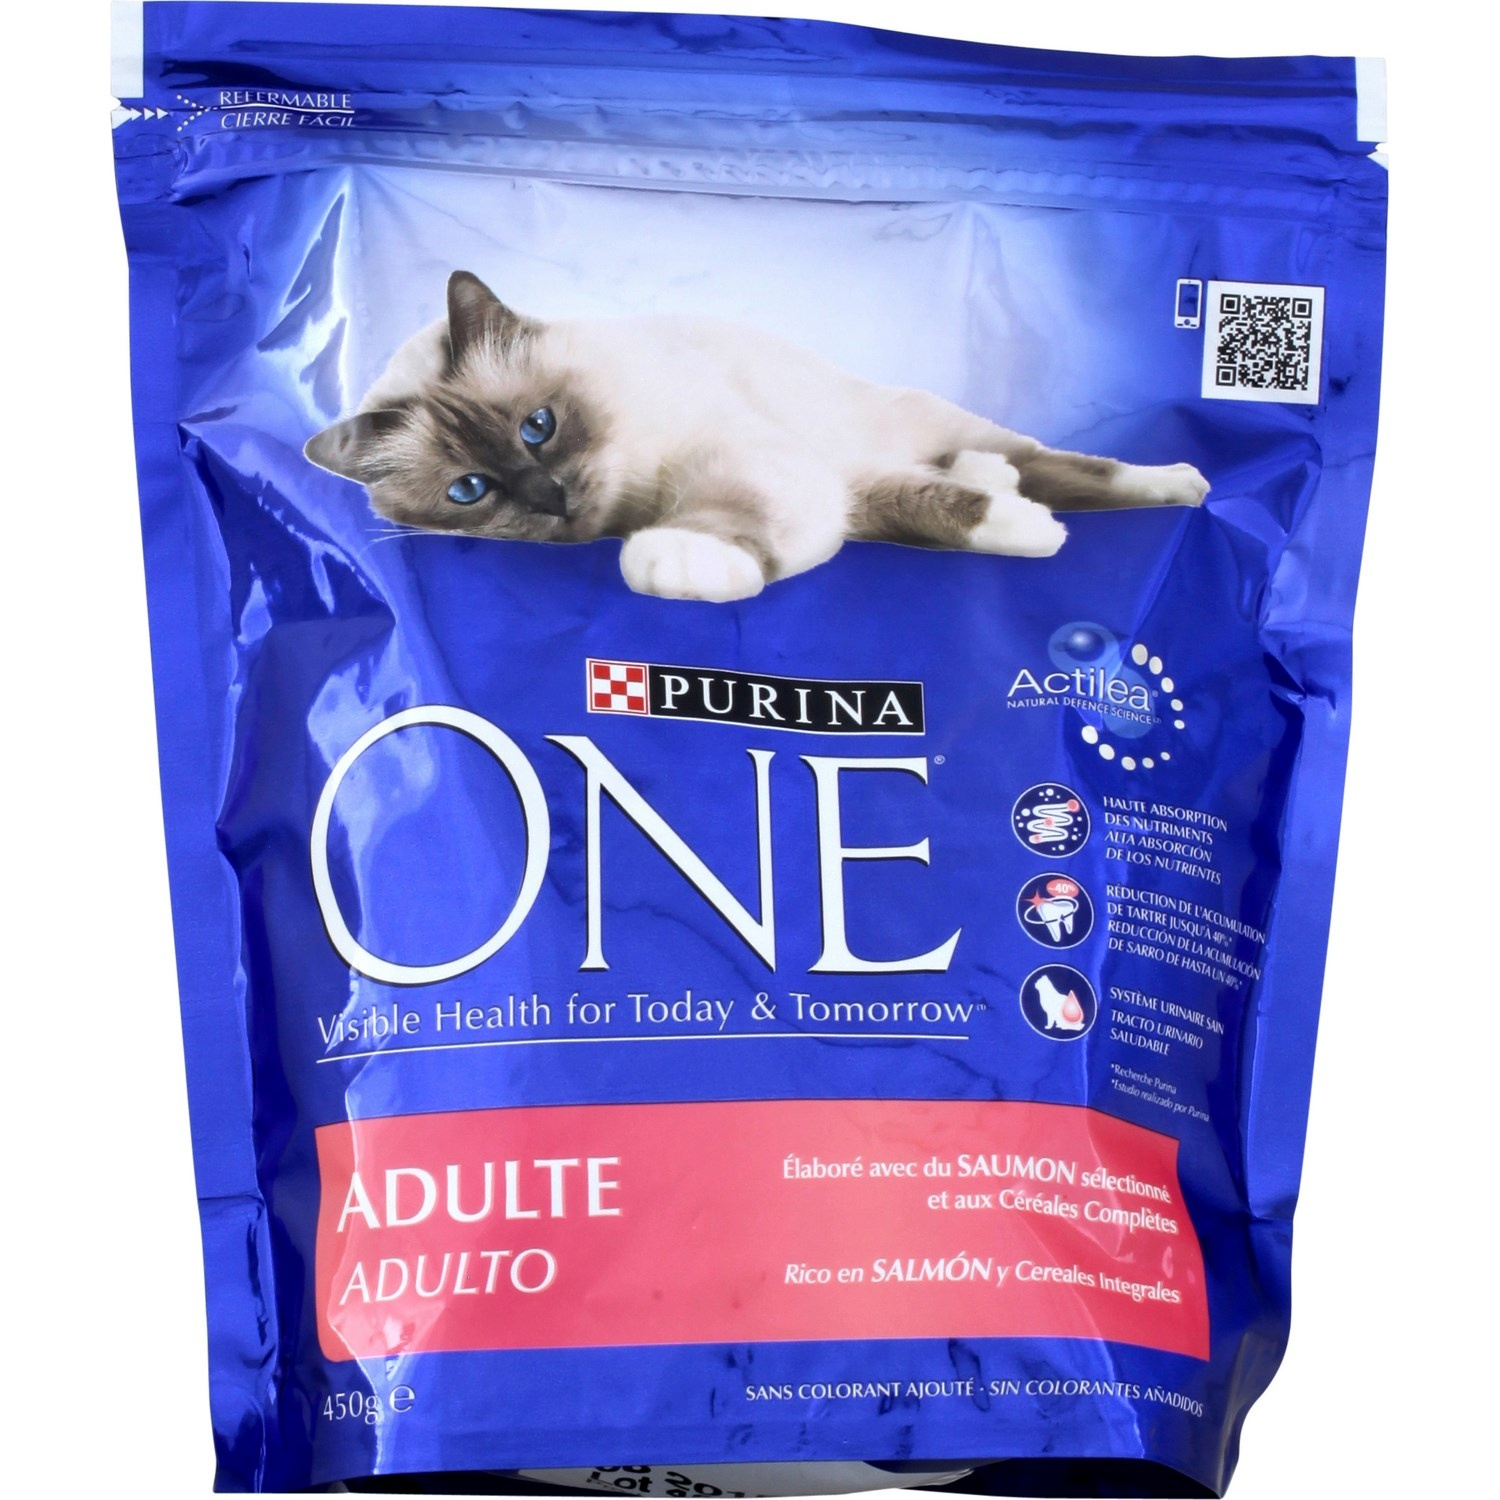 Croquettes pour chat au saumon, Purina One (450 g)